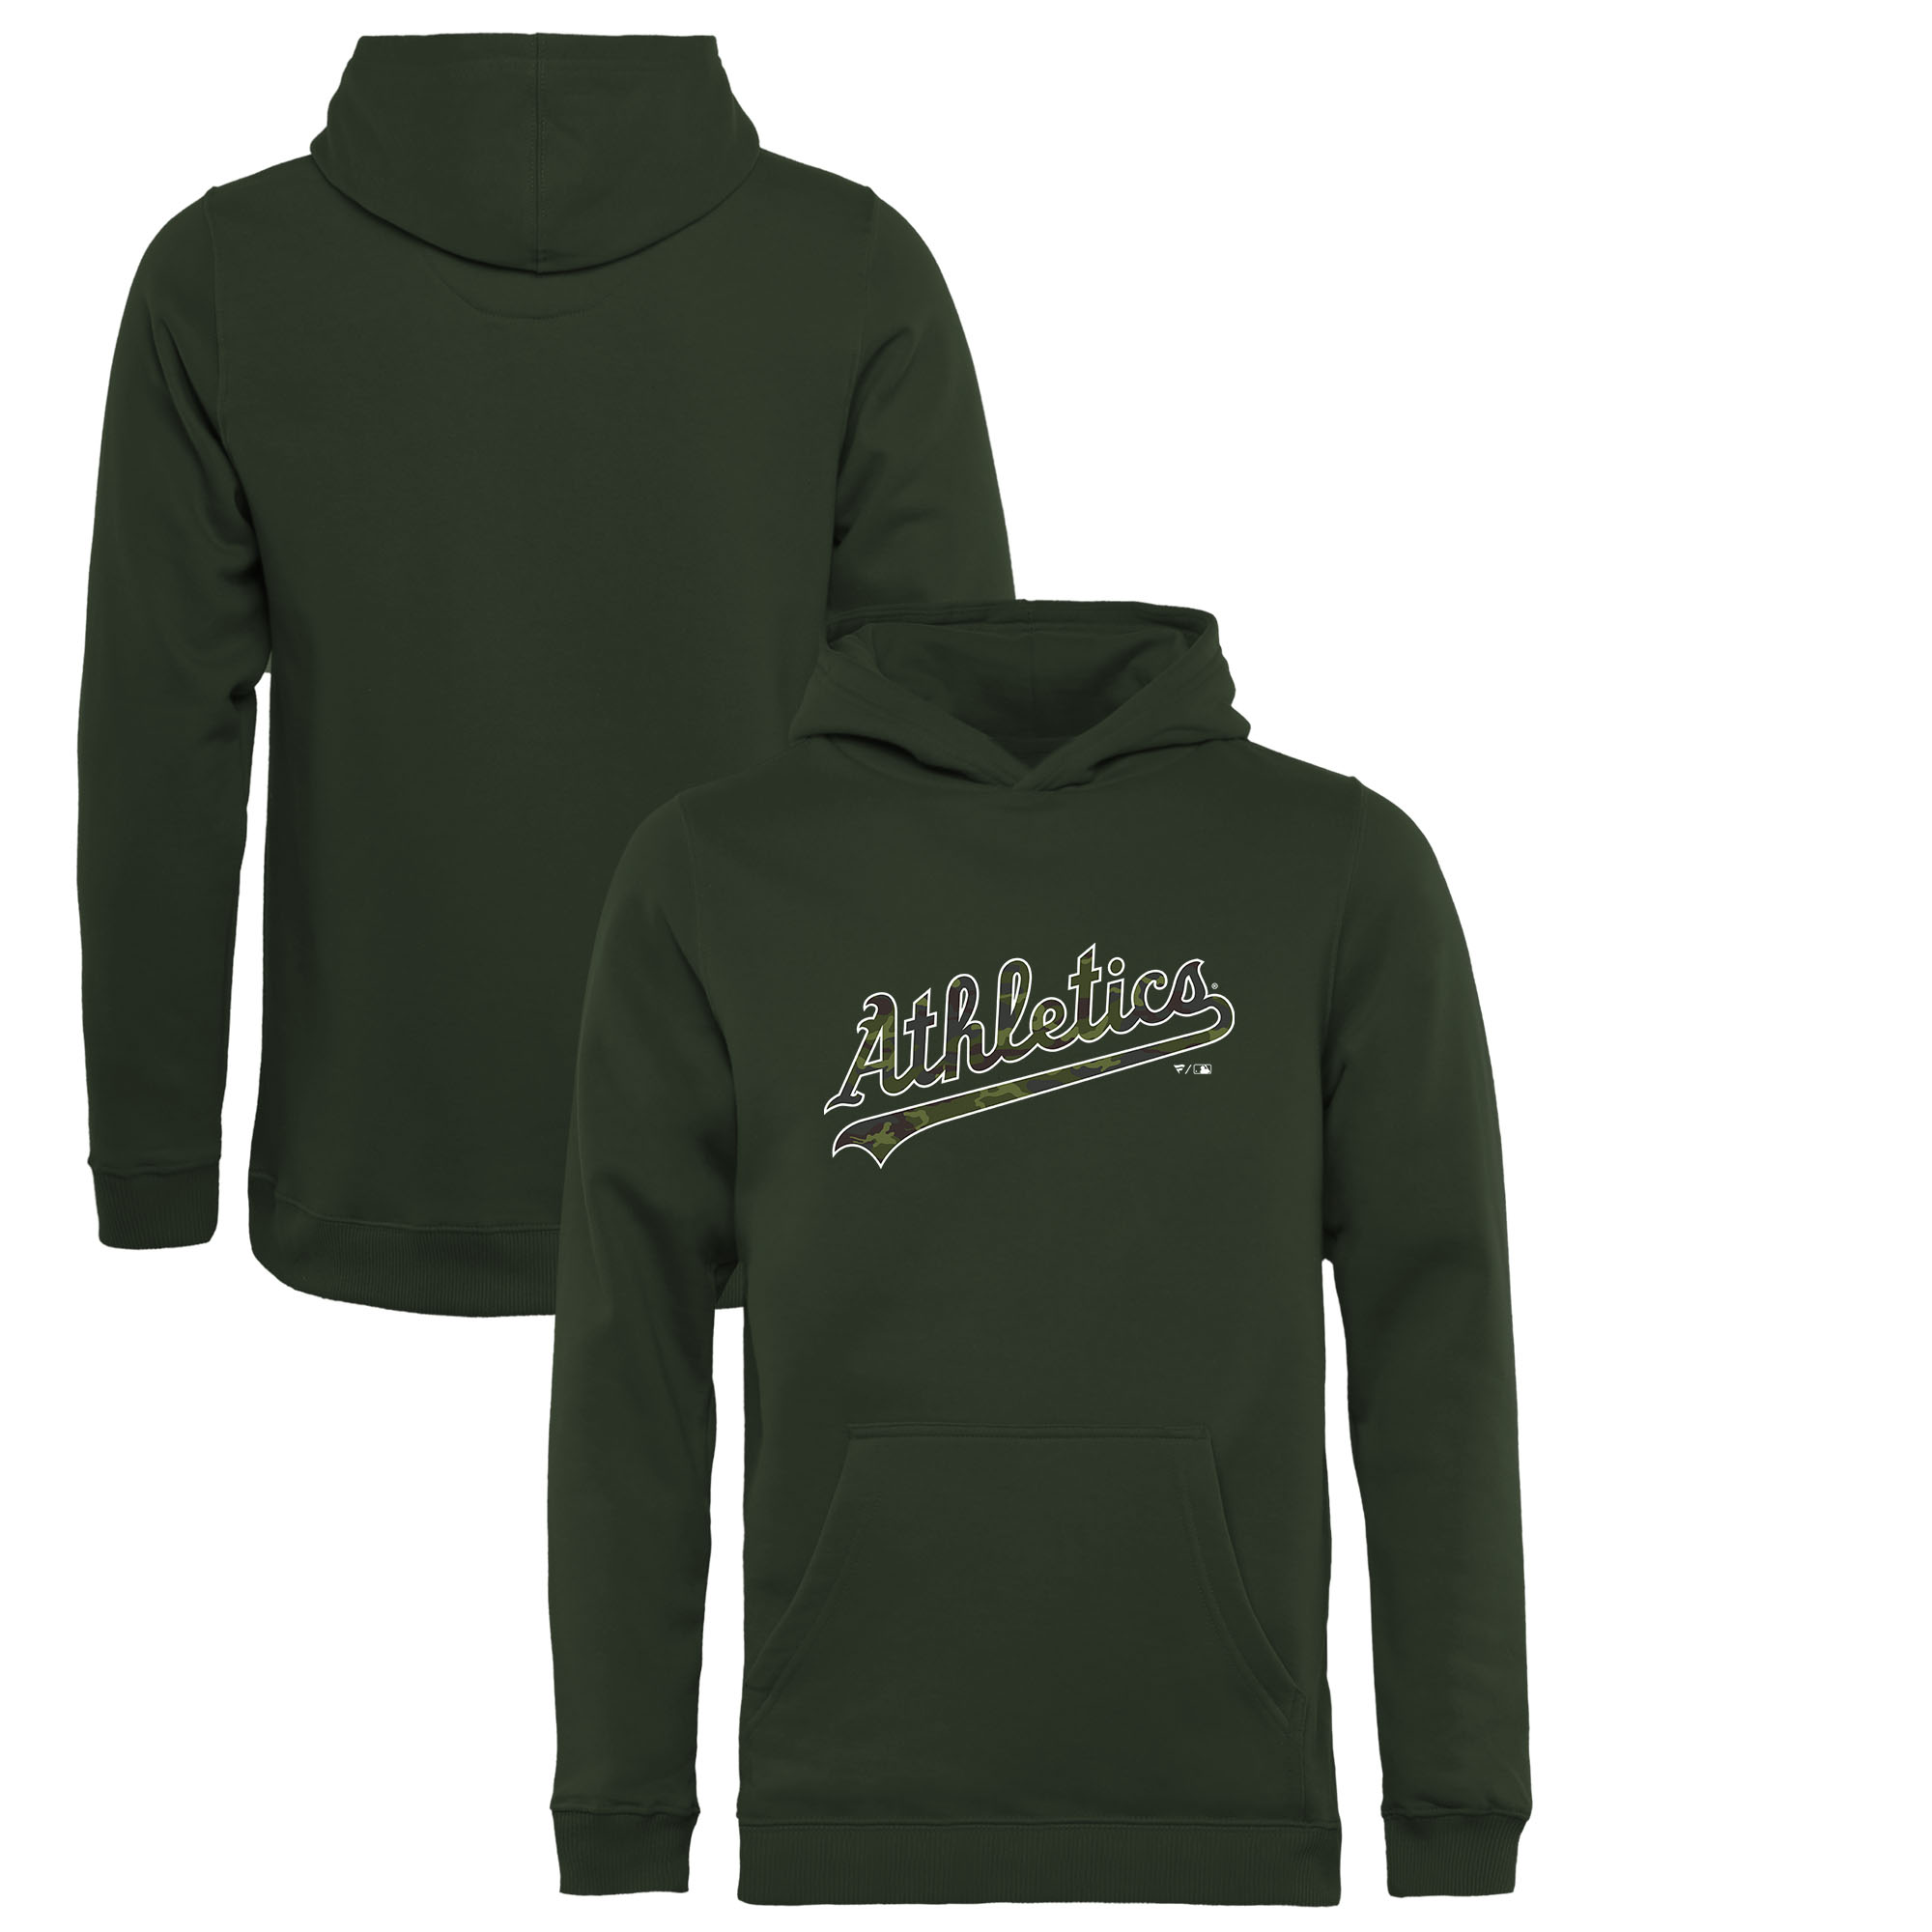 Oakland Athletics Fanatics Branded Youth Memorial Wordmark Pullover Hoodie - Green